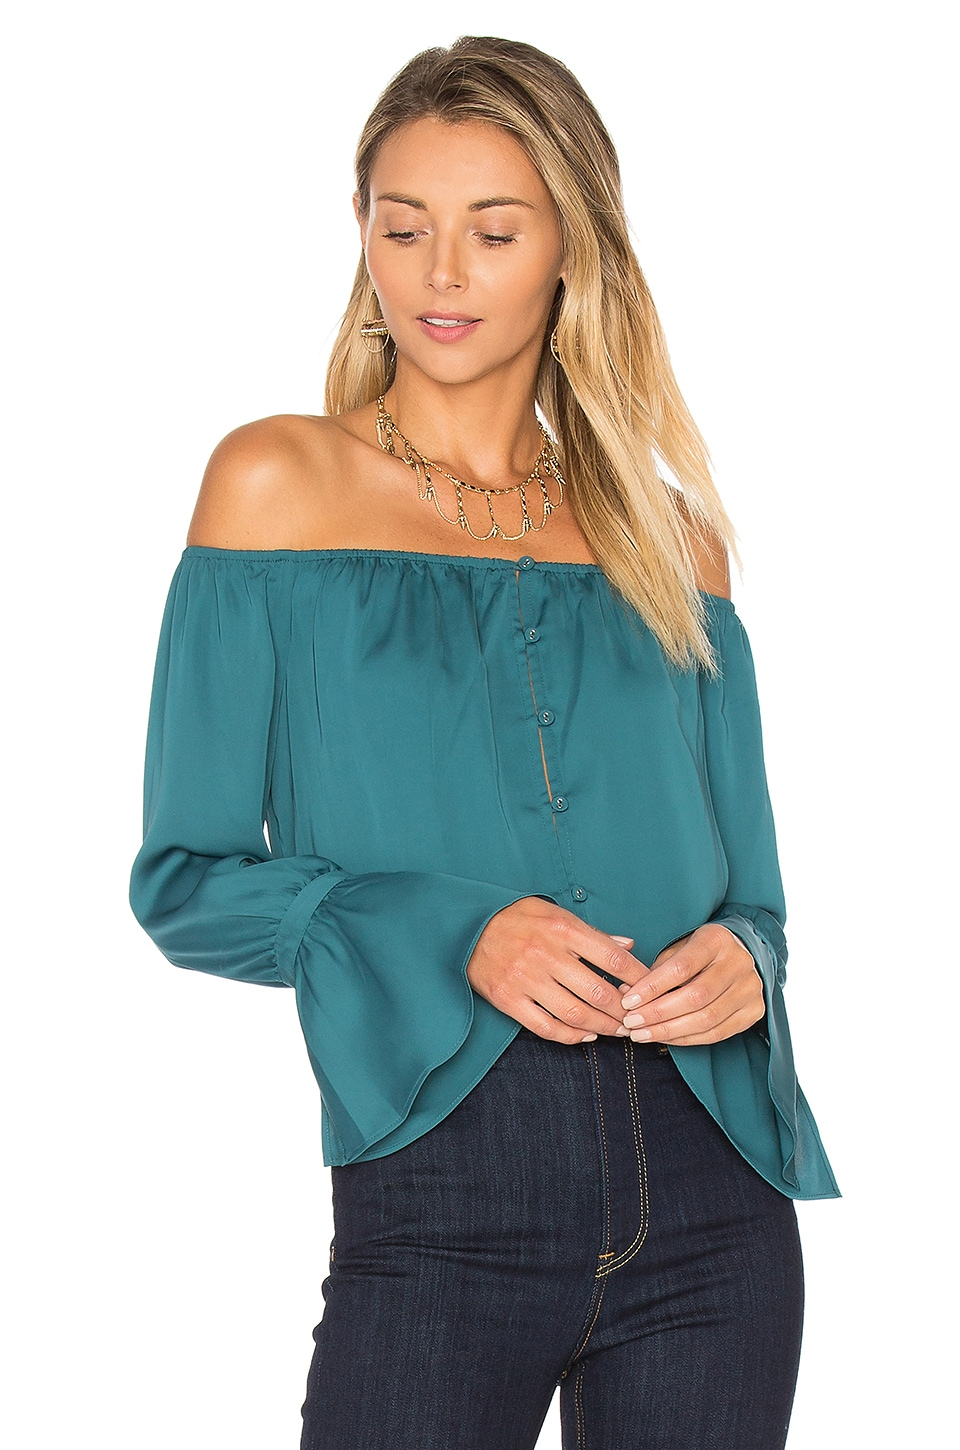 The Off Shoulder Blouse by L'Academie